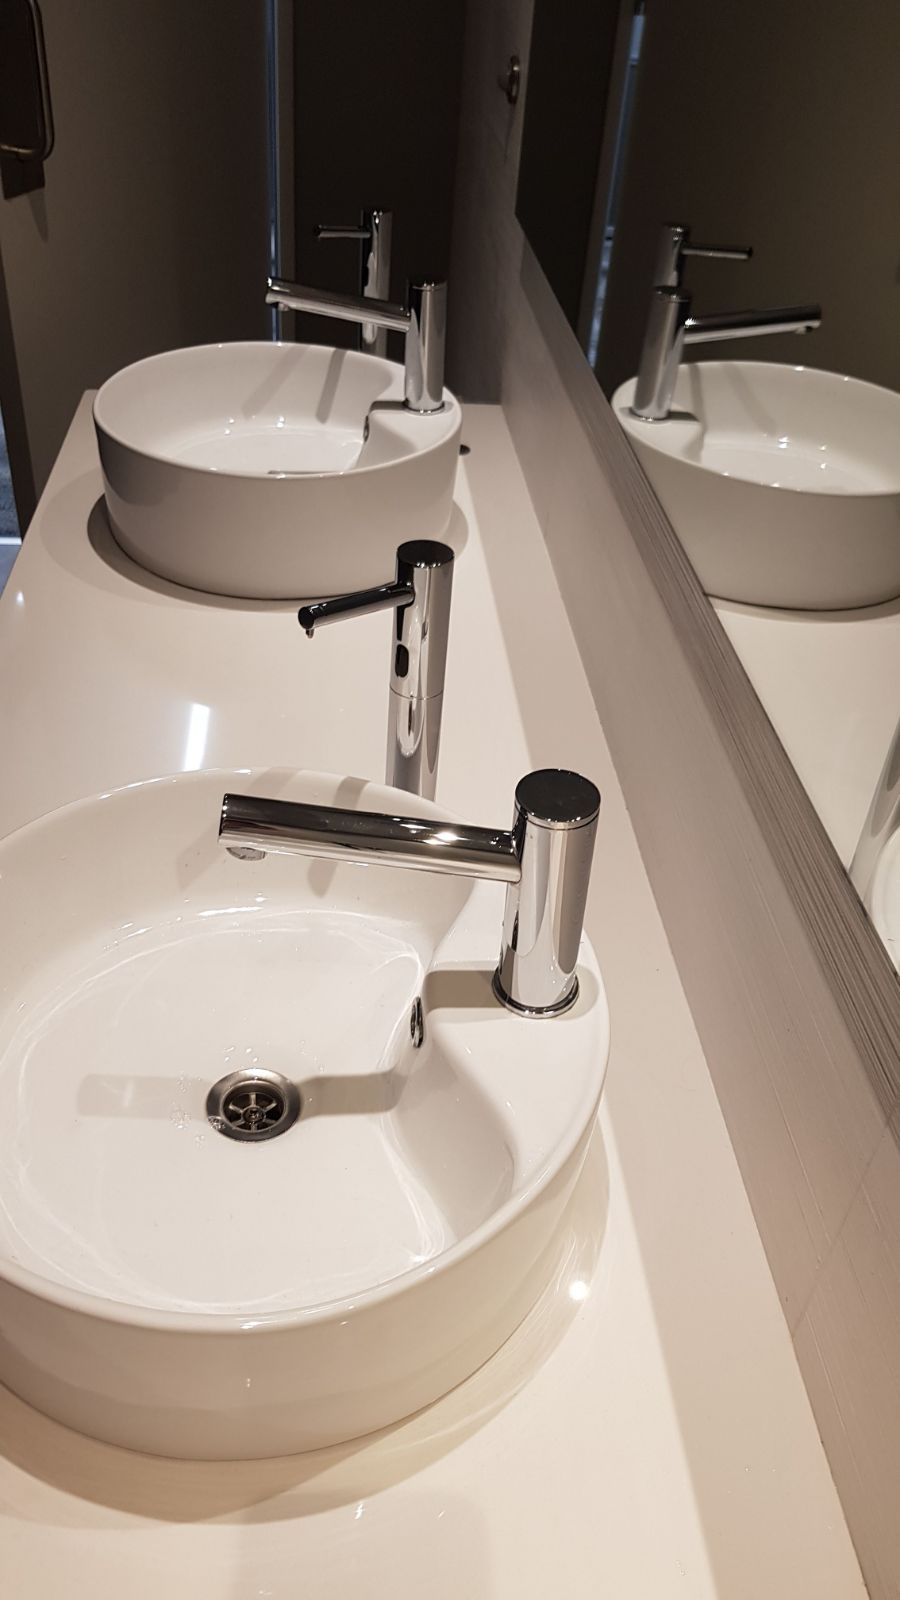 Stern S Elite L Touch Free Electronic Faucets With Extra Long Spout And Matching Elite Plus Touch Free Soap Dispensers Tall Version For Counter Top Wash Basins [ 1600 x 900 Pixel ]